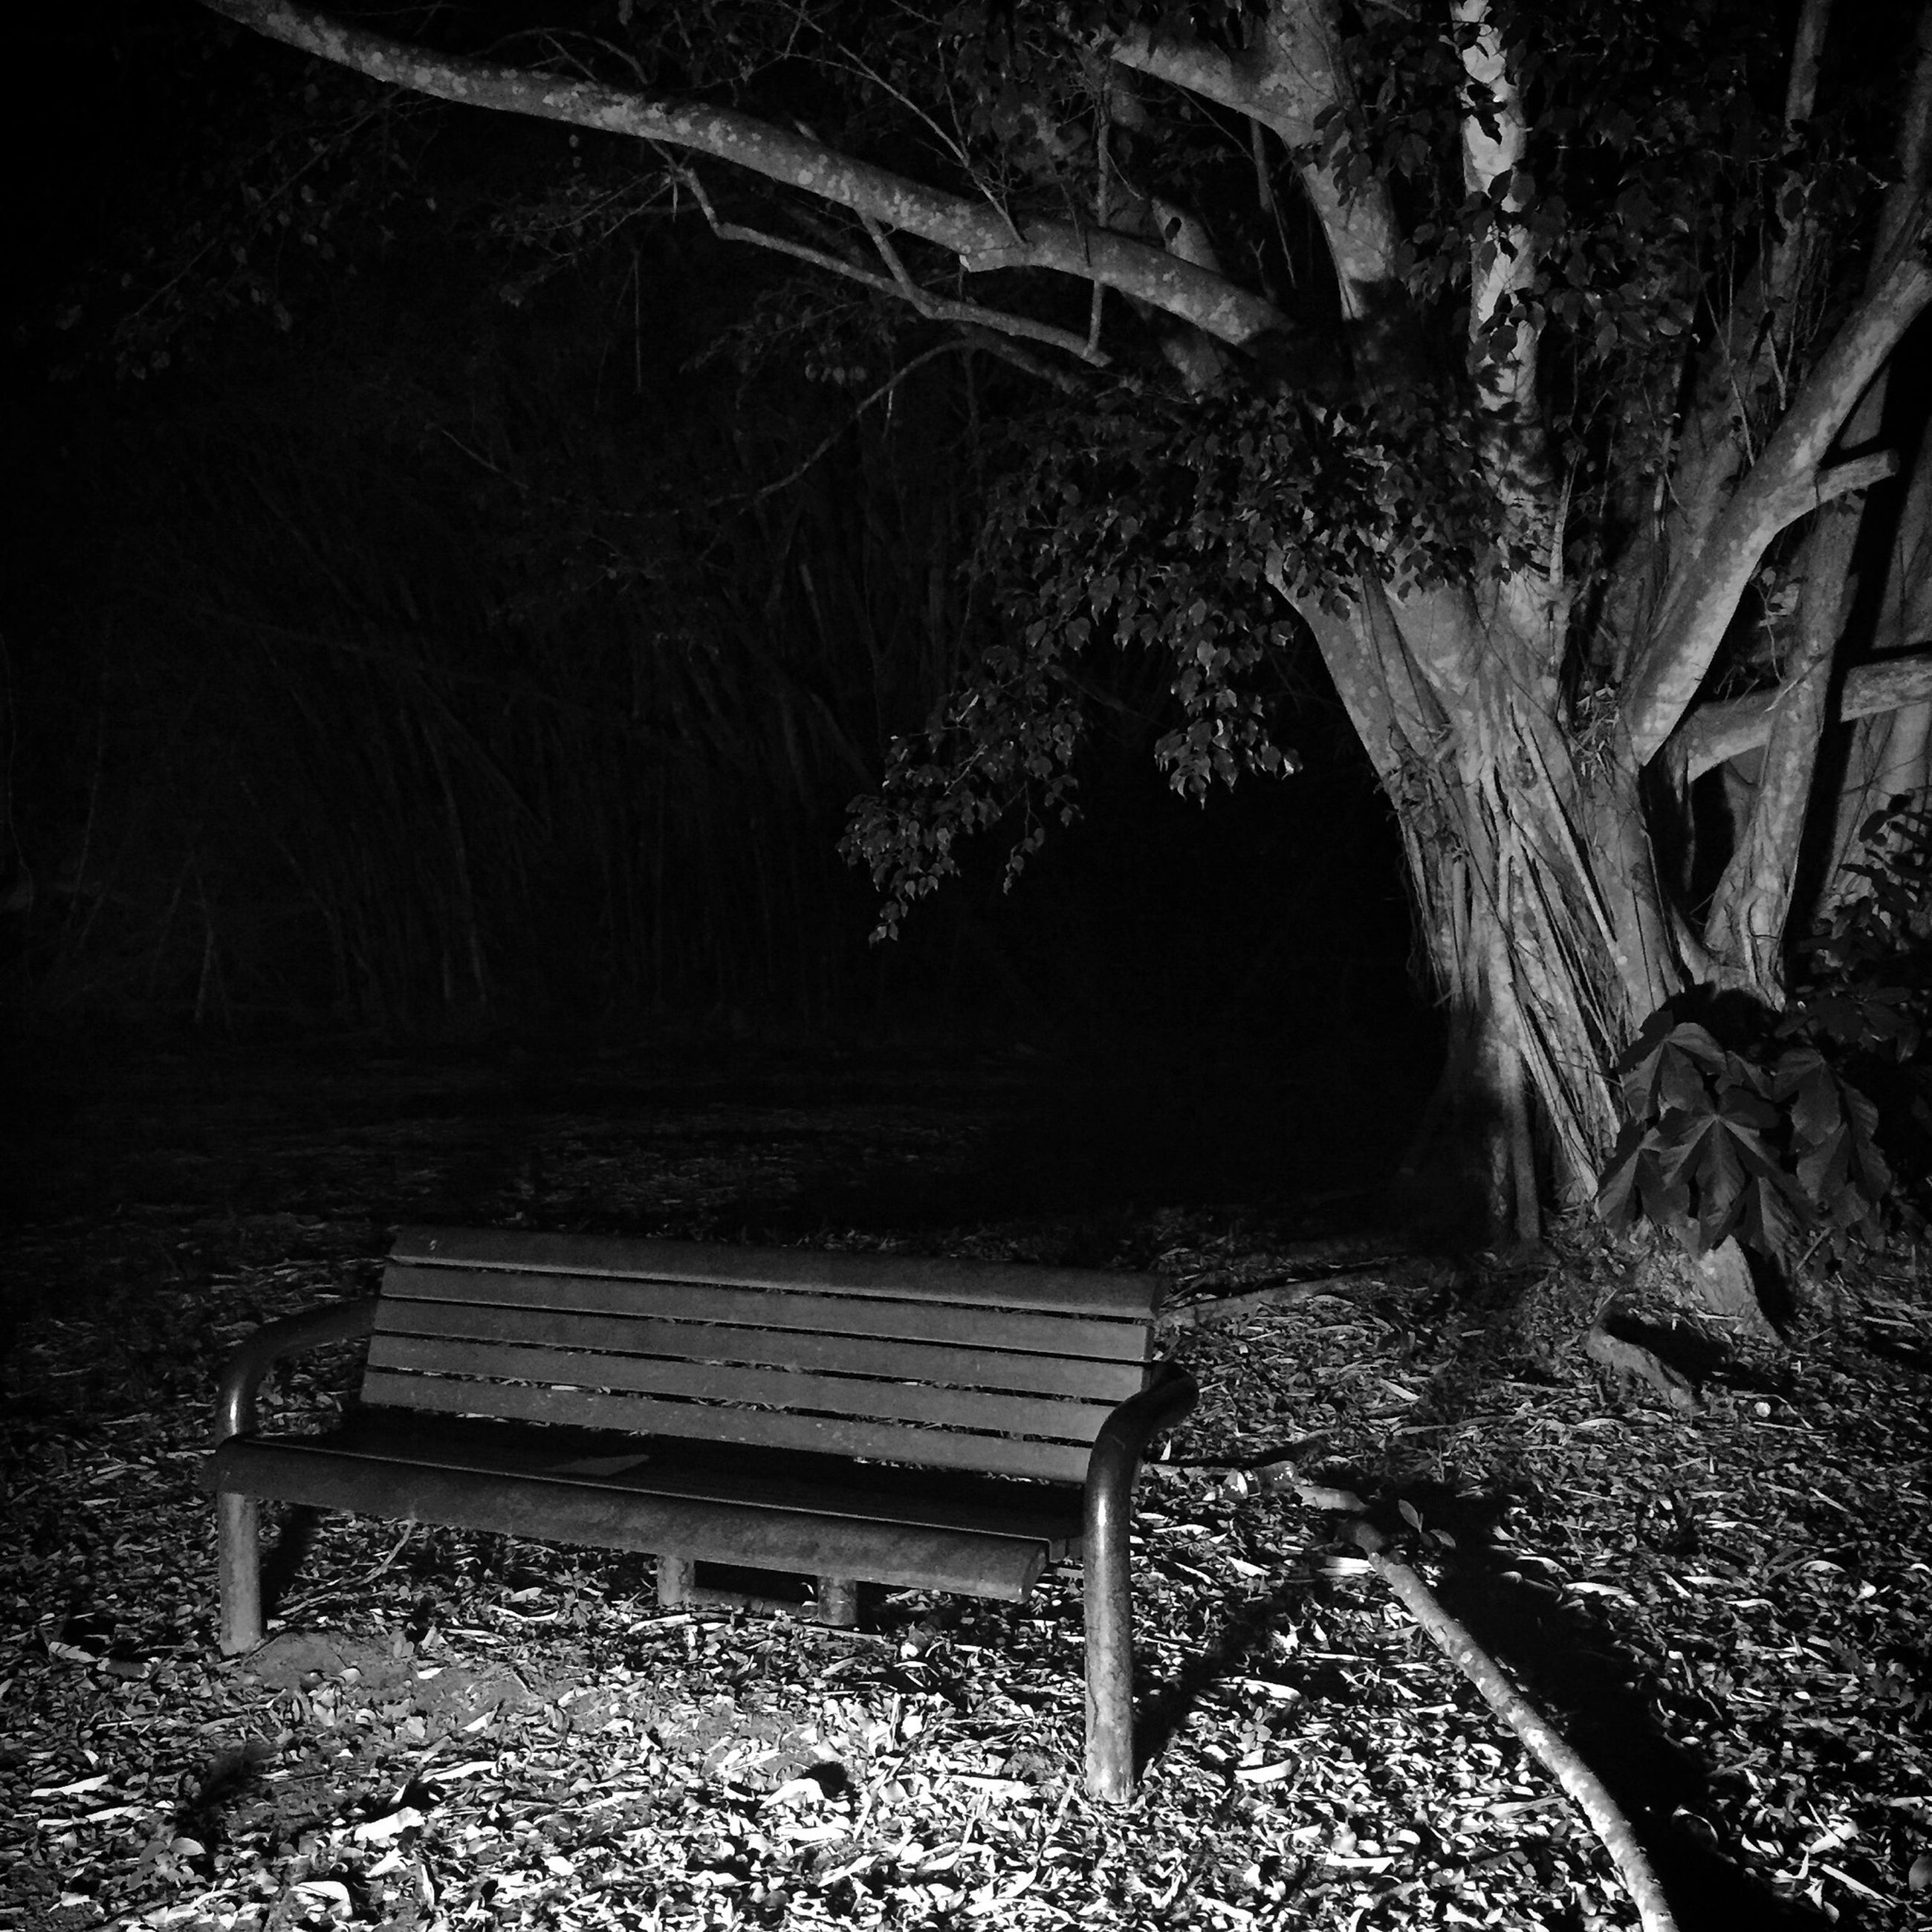 wood - material, abandoned, bench, old, empty, obsolete, damaged, absence, wood, chair, tree, wooden, tranquility, seat, day, nature, no people, run-down, field, deterioration